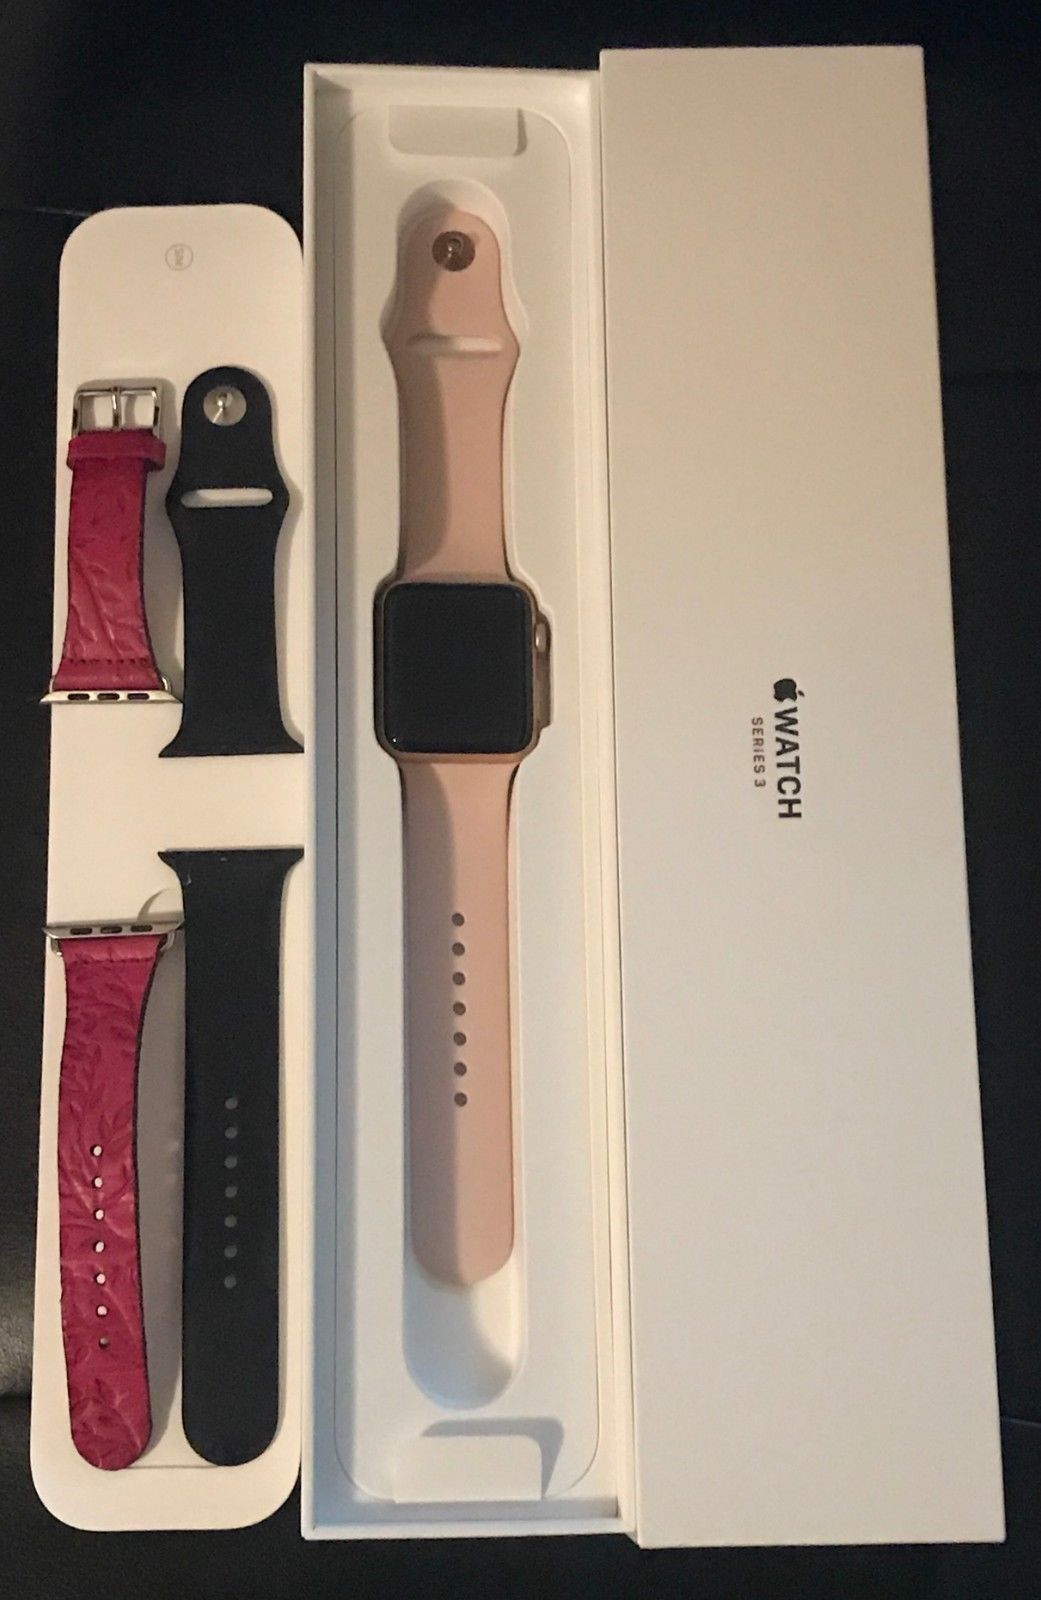 Apple Watch Series 3 42mm Rose Gold Gps Cellular 4g Lte